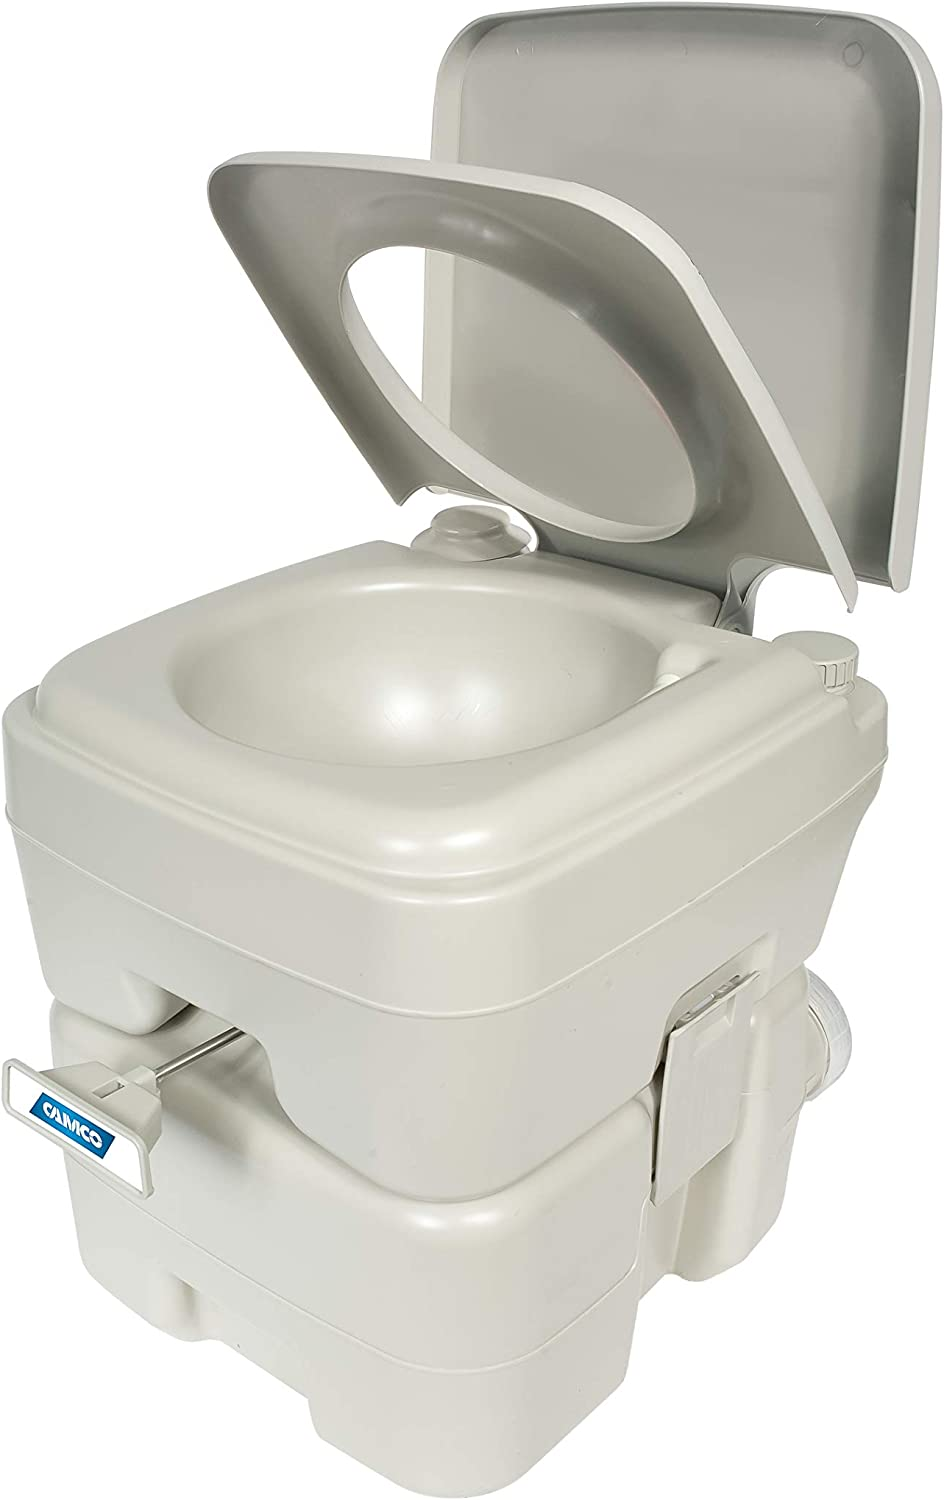 Camco Portable Travel Toilet (41541)